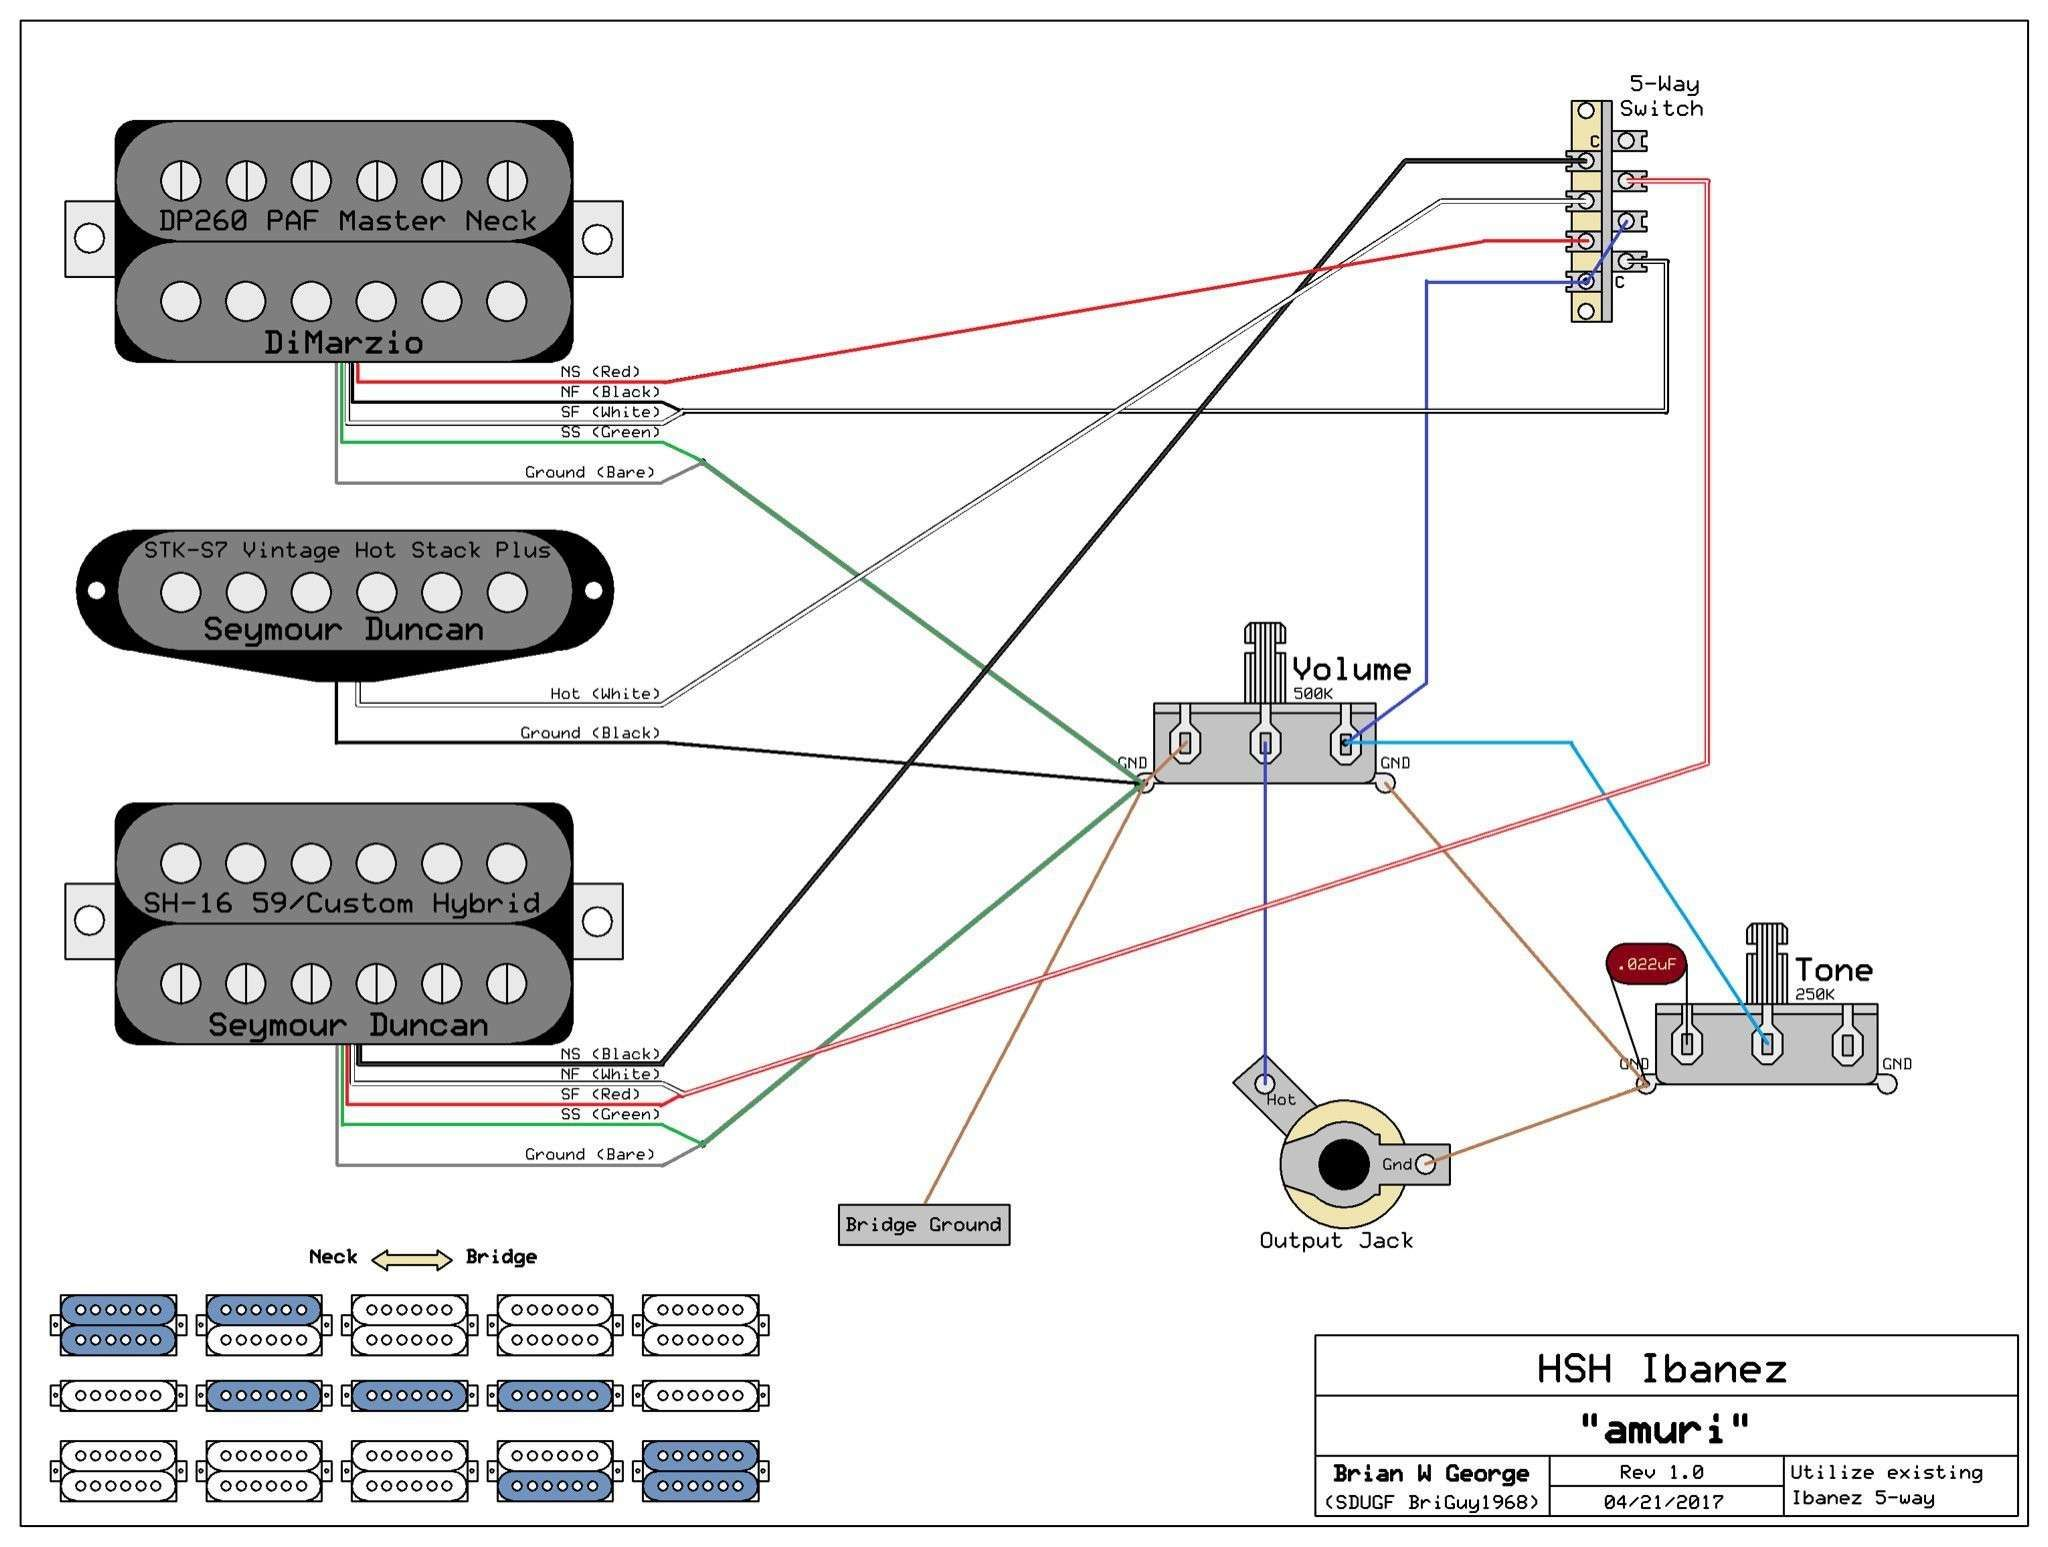 medium resolution of wiring diagram 3 way switch awesome ibanez electric guitar wiring diagram fresh 3 way switch luxury